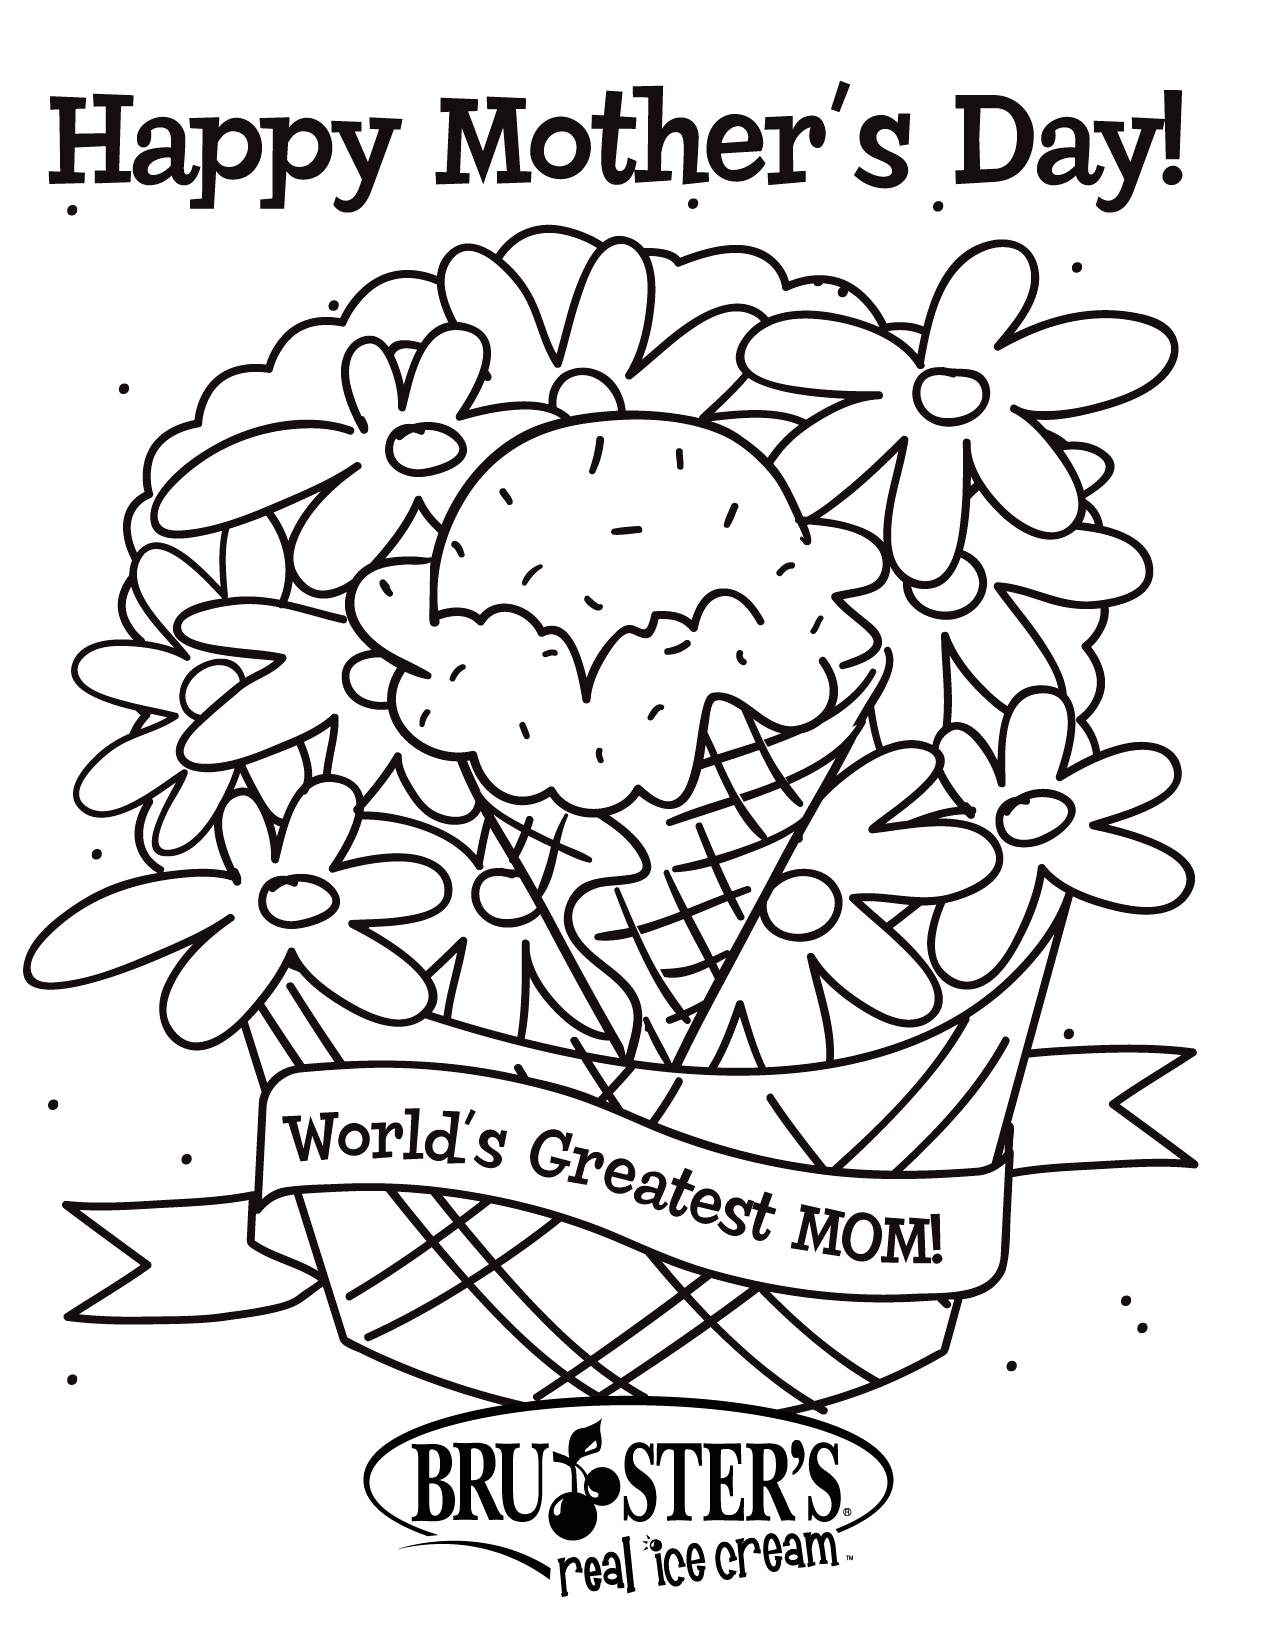 Free Printable Coloring Pages for Mothers Day Free Printable Mothers Day Coloring Pages for Kids